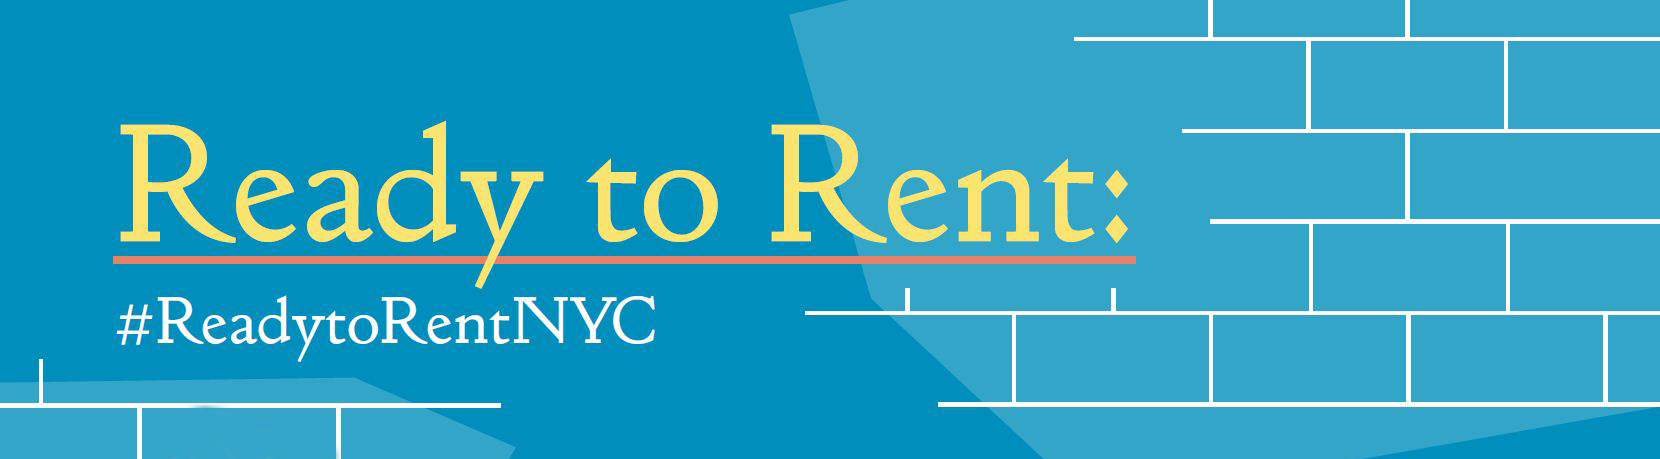 City holds town hall on Ready to Rent program for affordable housing